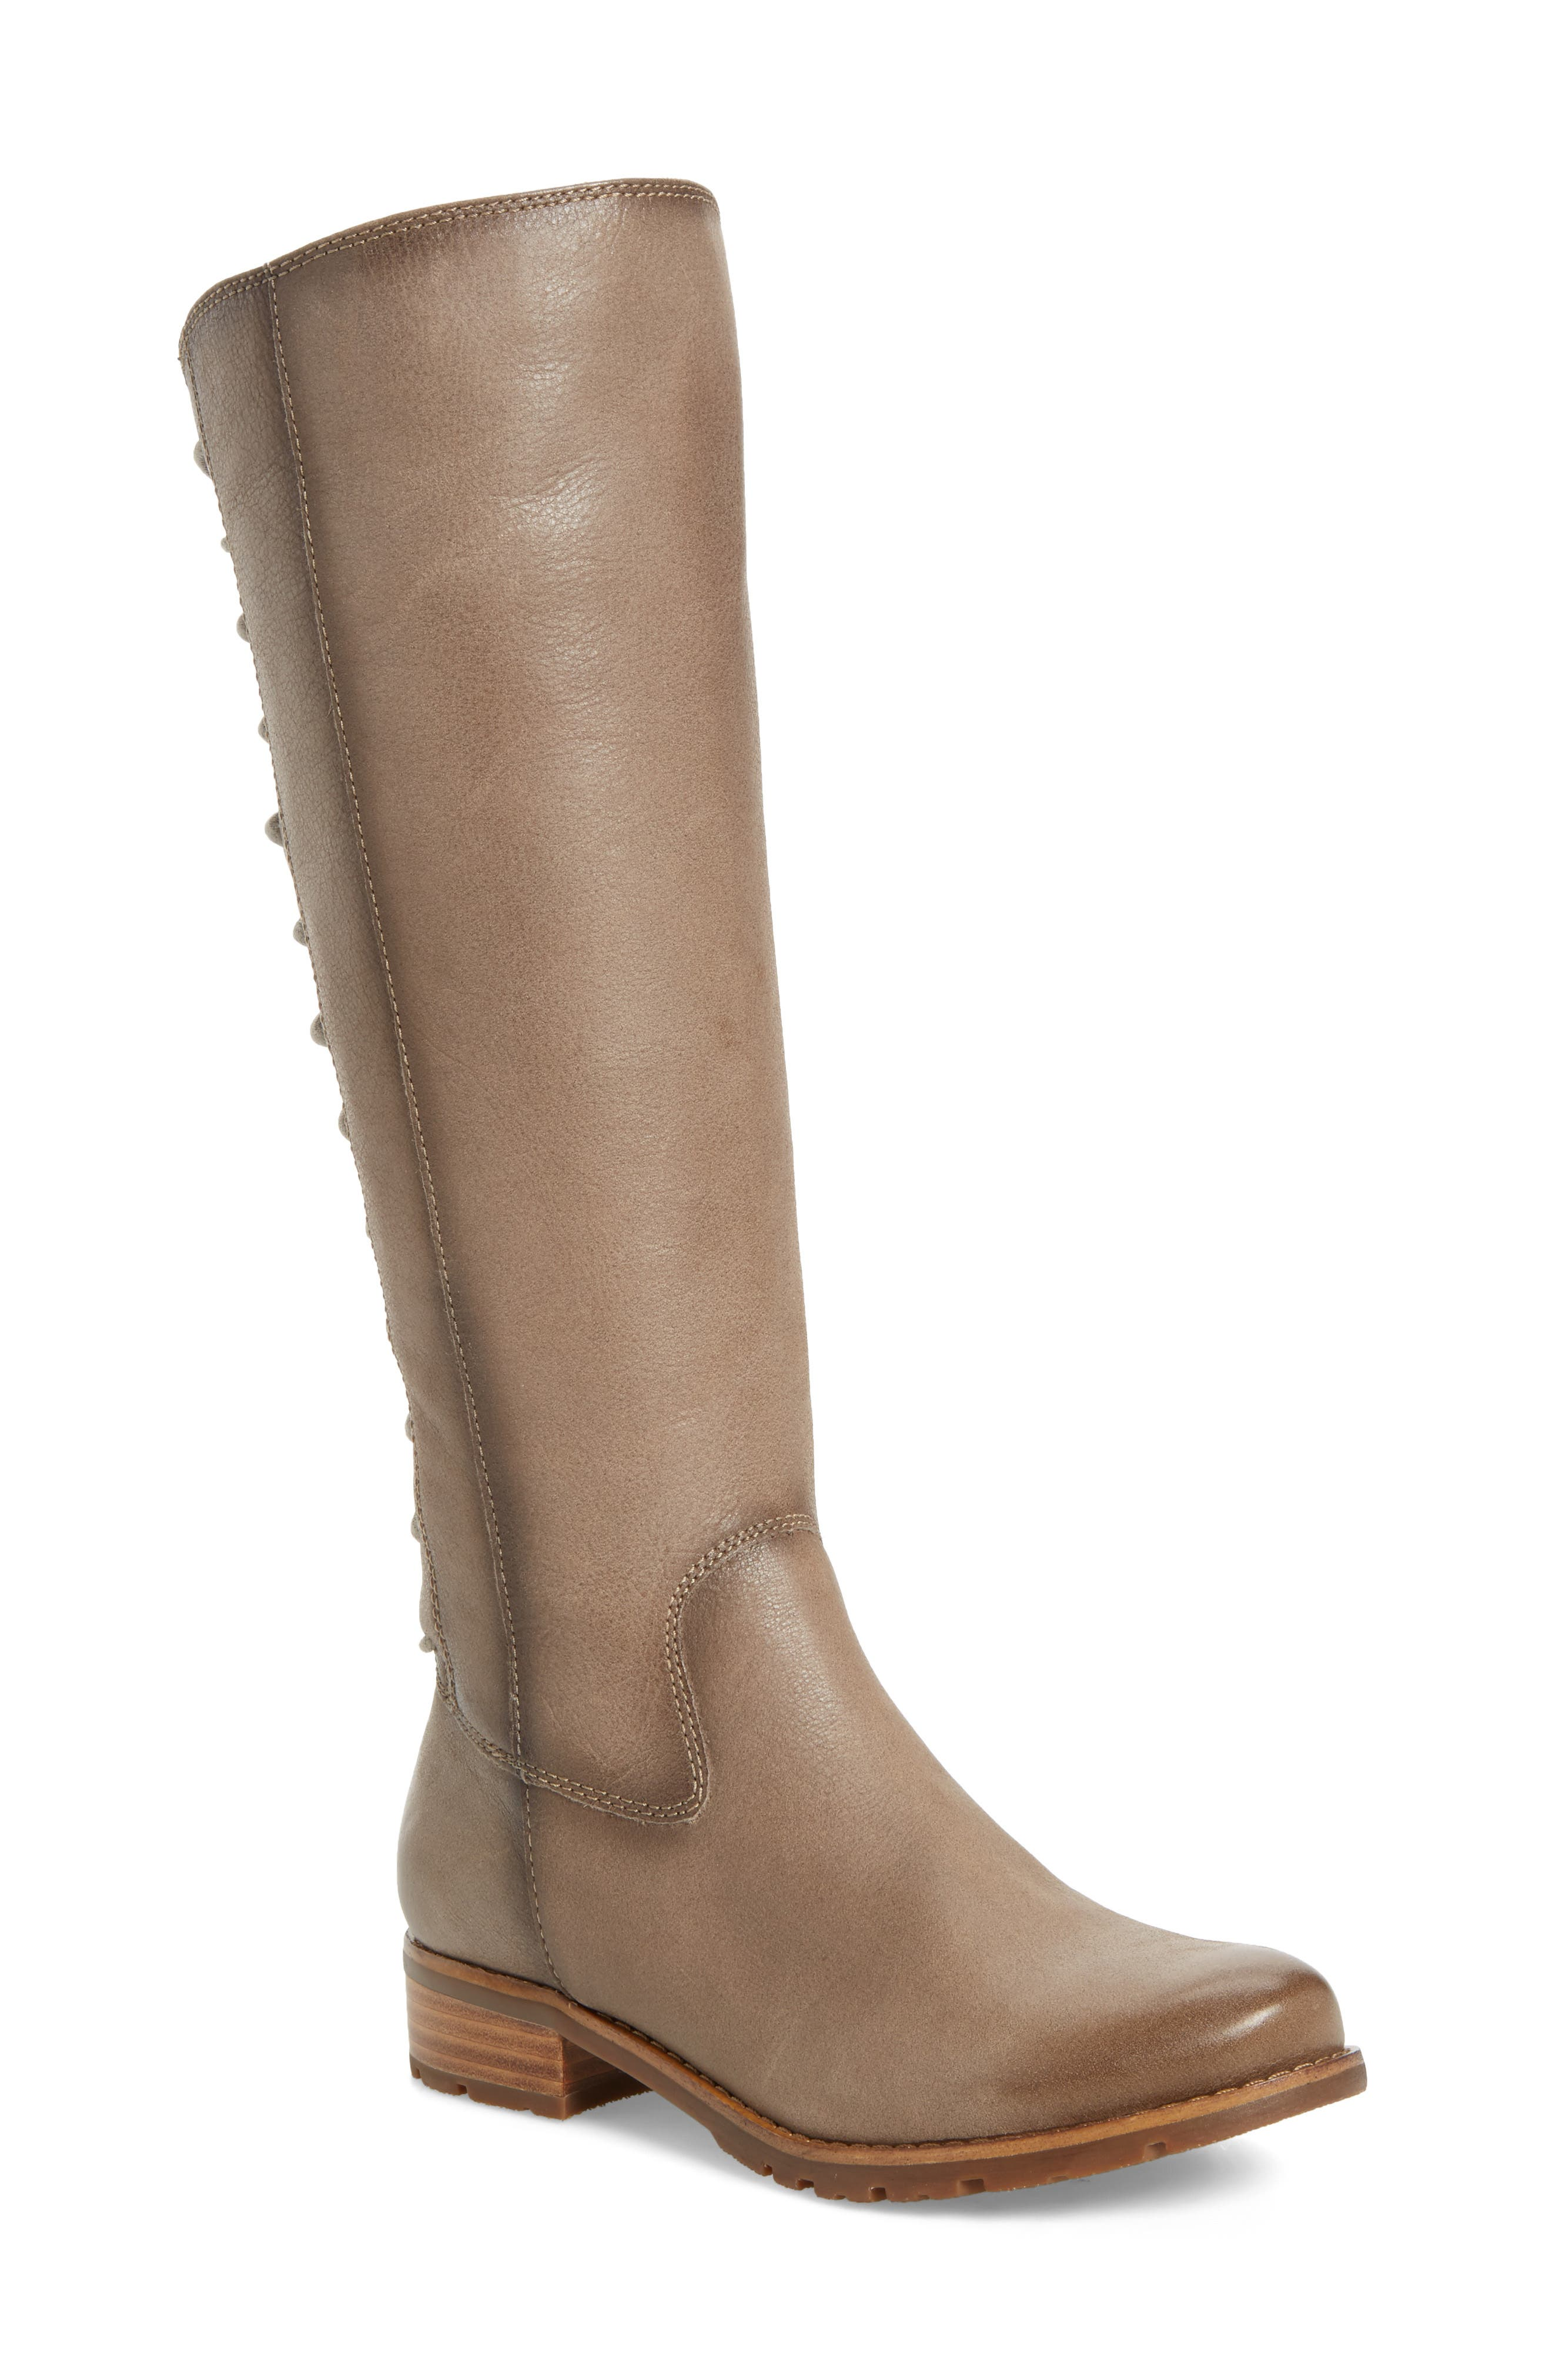 'Sharnell' Riding Boot,                         Main,                         color, 030